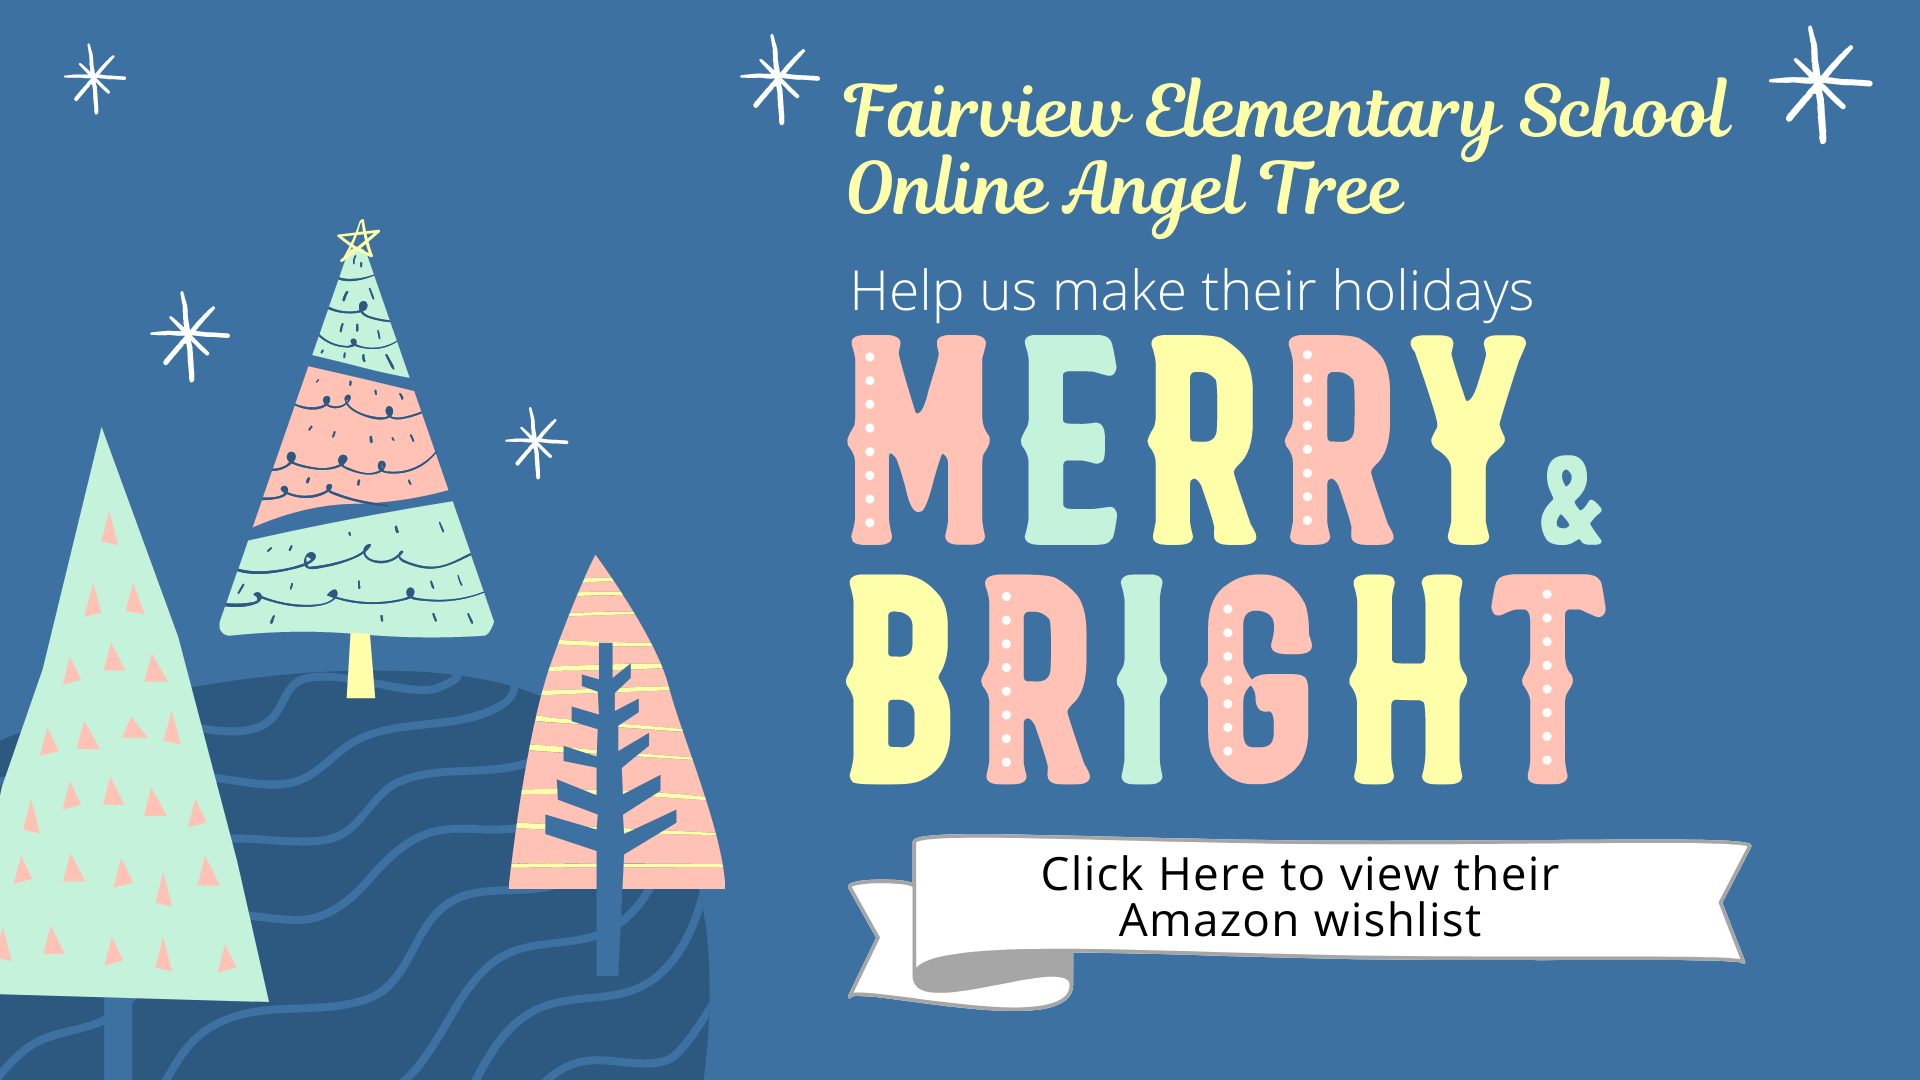 Mon_Fairview Angel Tree (3)